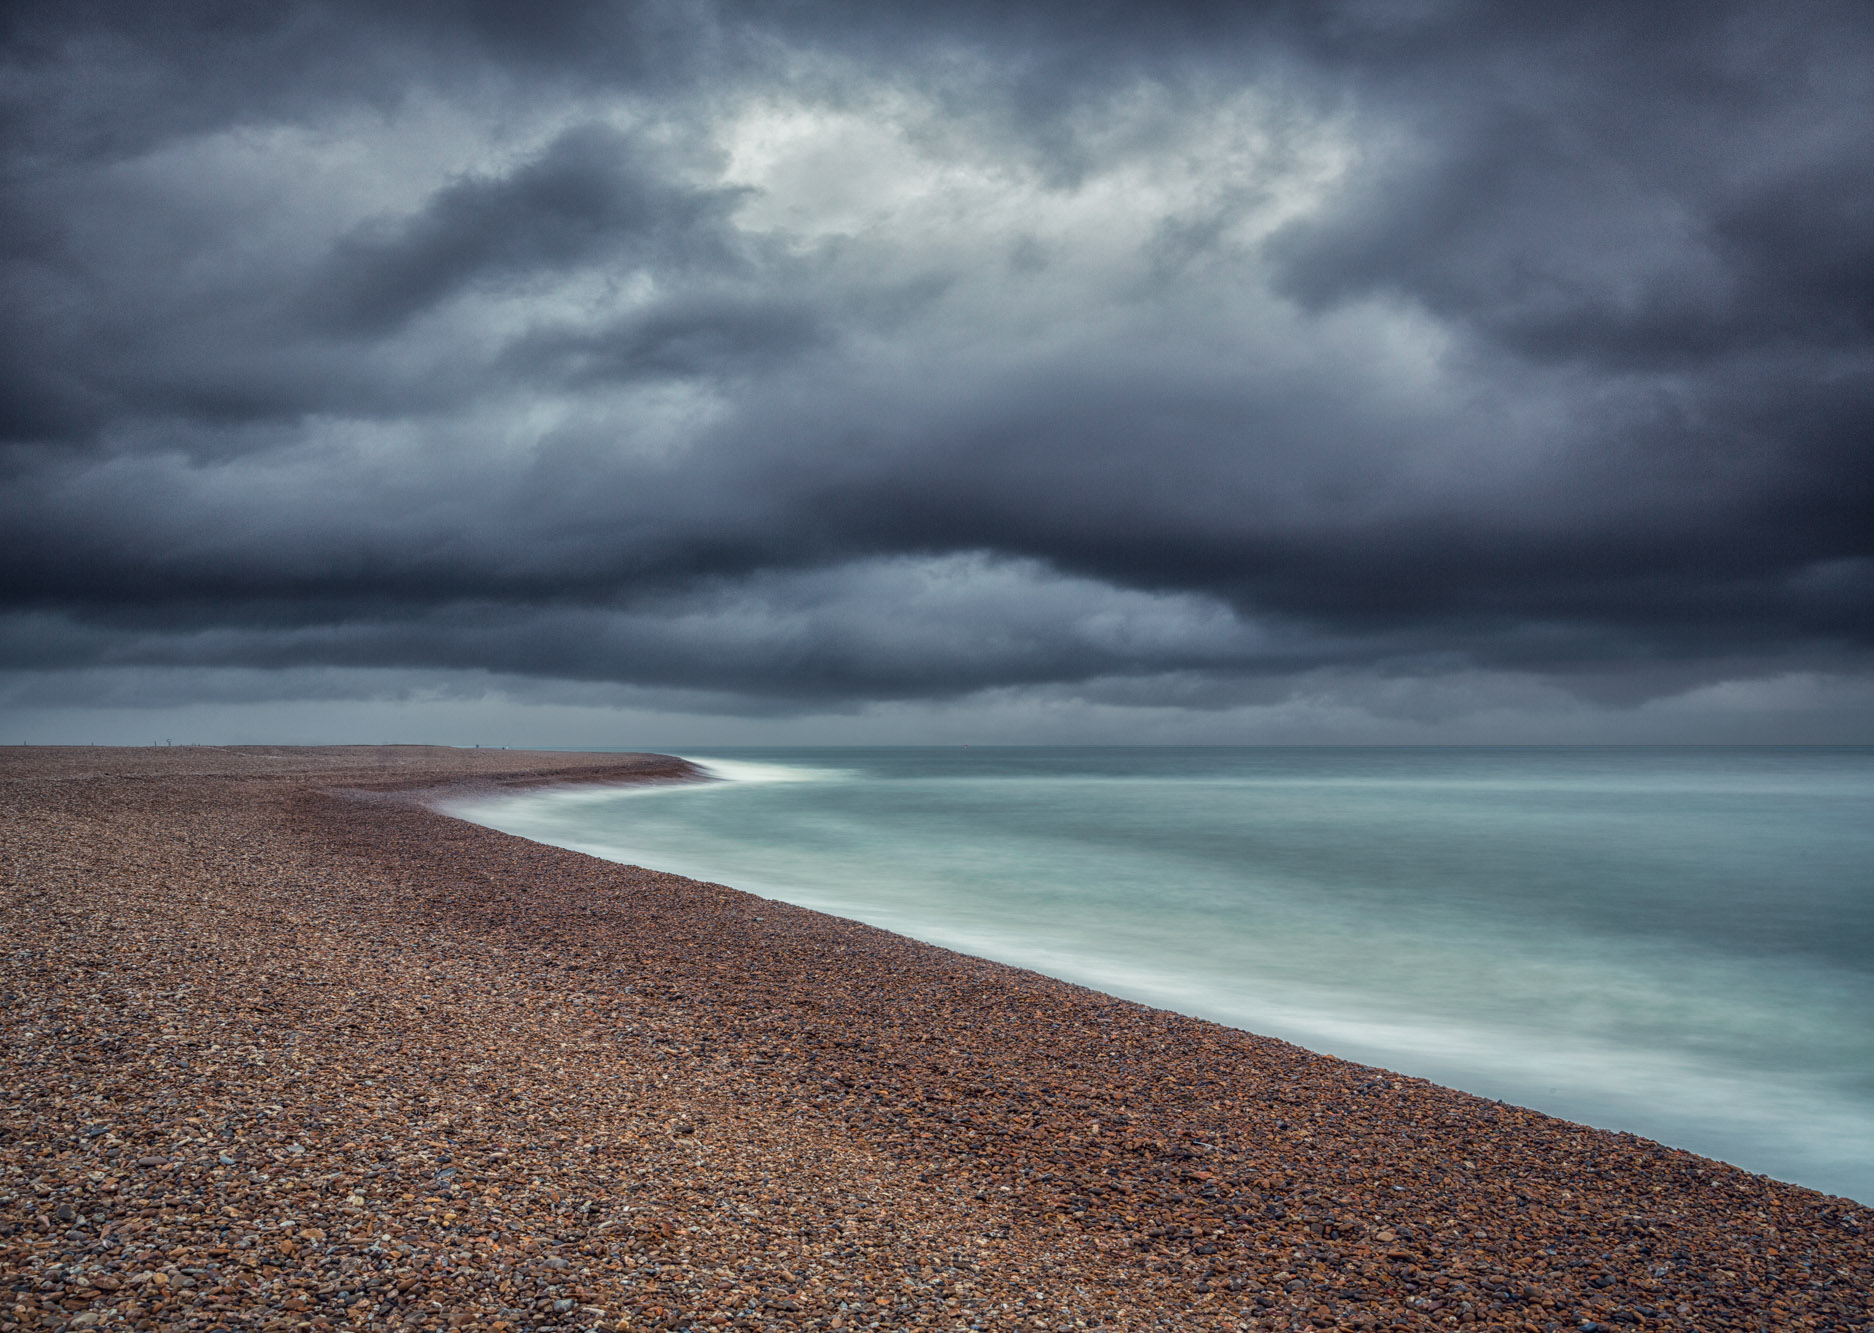 antonyz long exposure landscape minimal photograph of stormy skies over a shingle beach in the UK